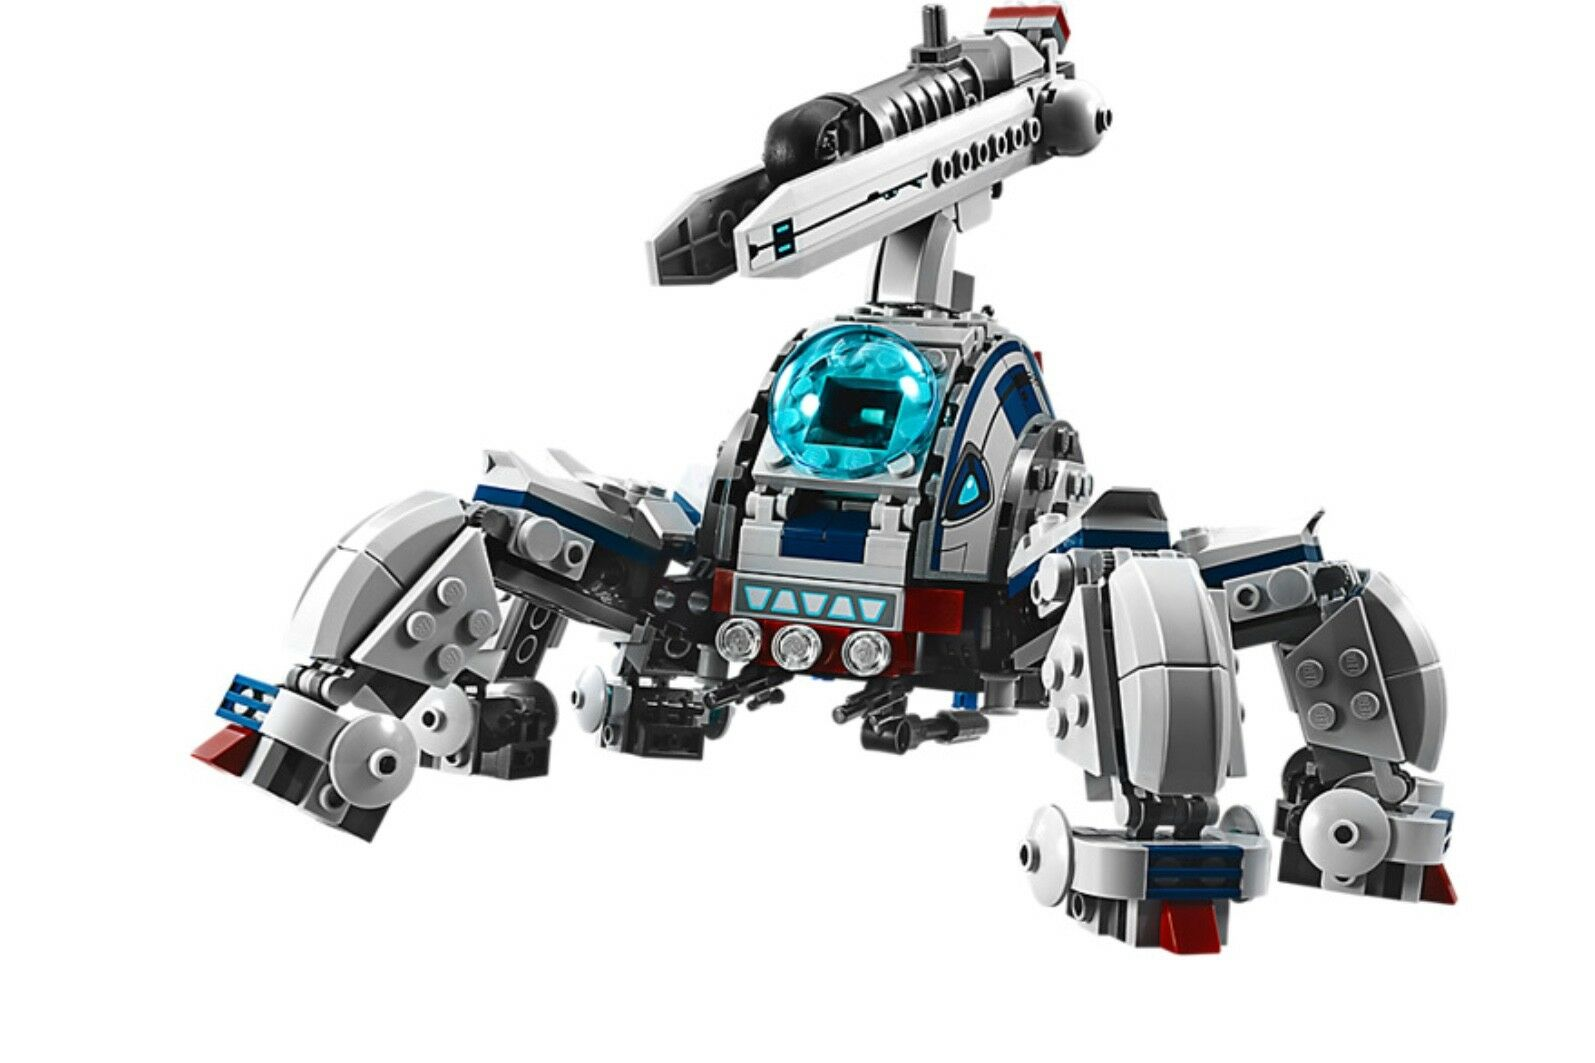 New Lego Star Wars UMBARAN MHC from set 75013 SET ONLY NO MINIFIGURES OR BOX